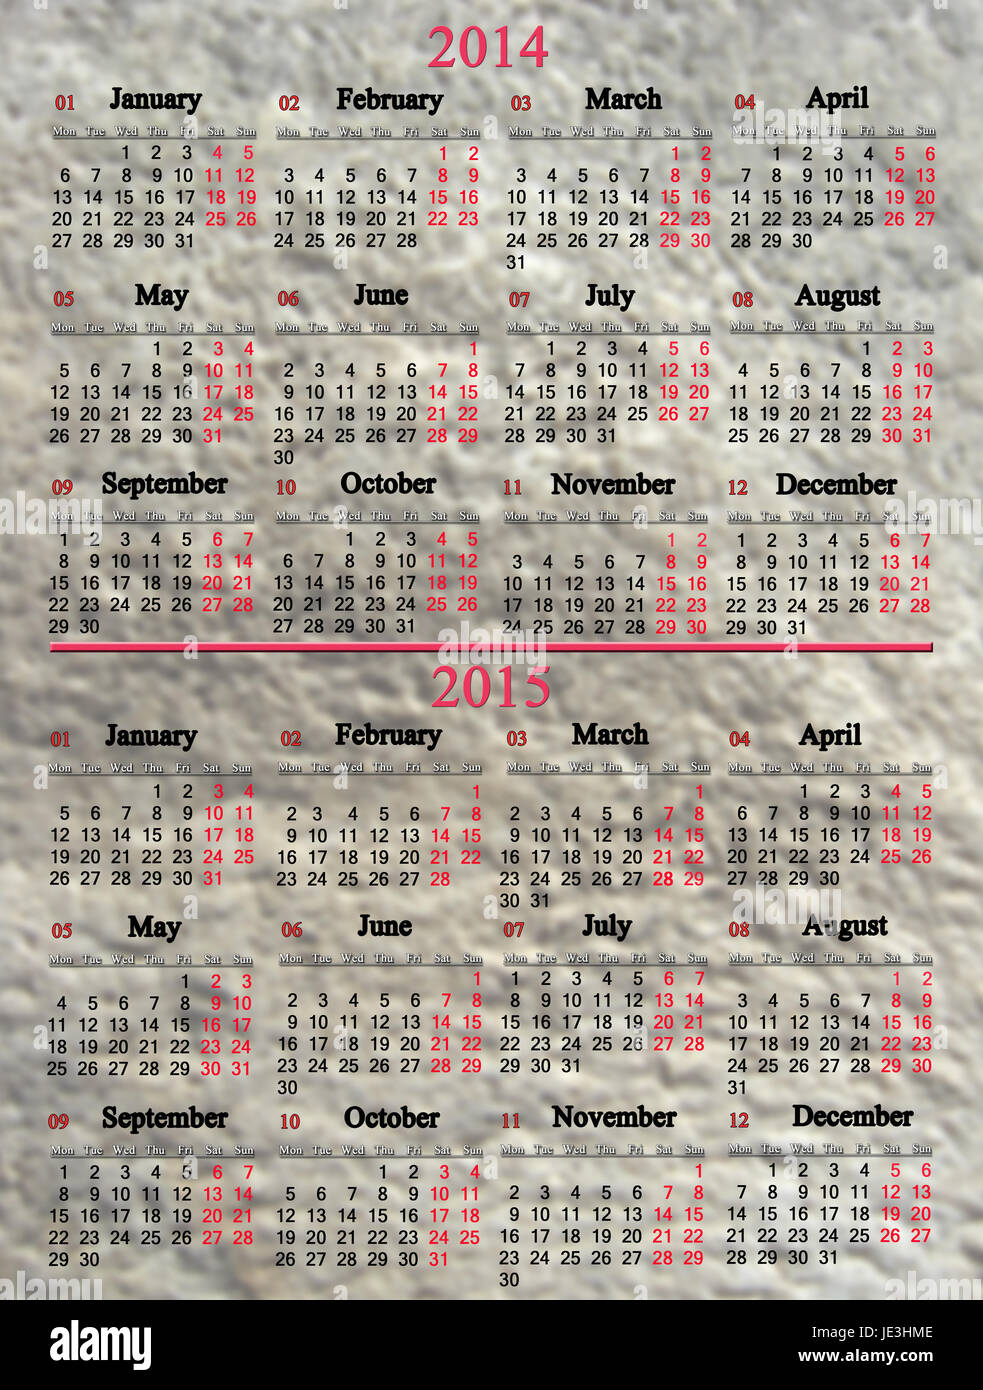 usual office calendar for 2014 - 2015 years on stony background - Stock Image